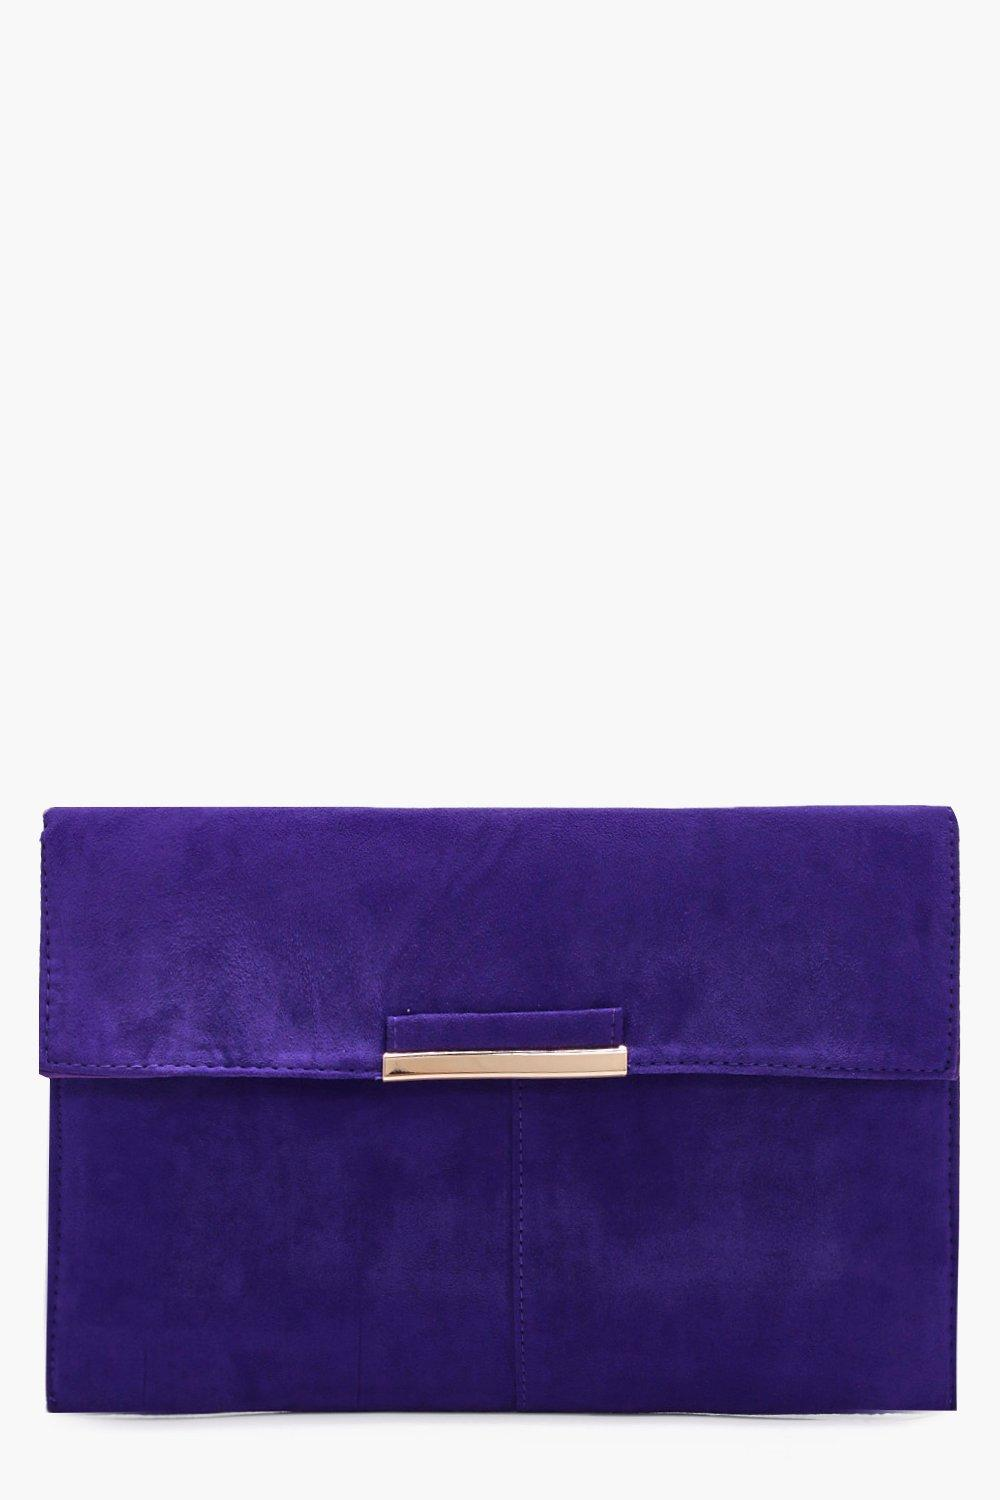 Suedette Coloured Clutch - purple - Kirsten Suedet